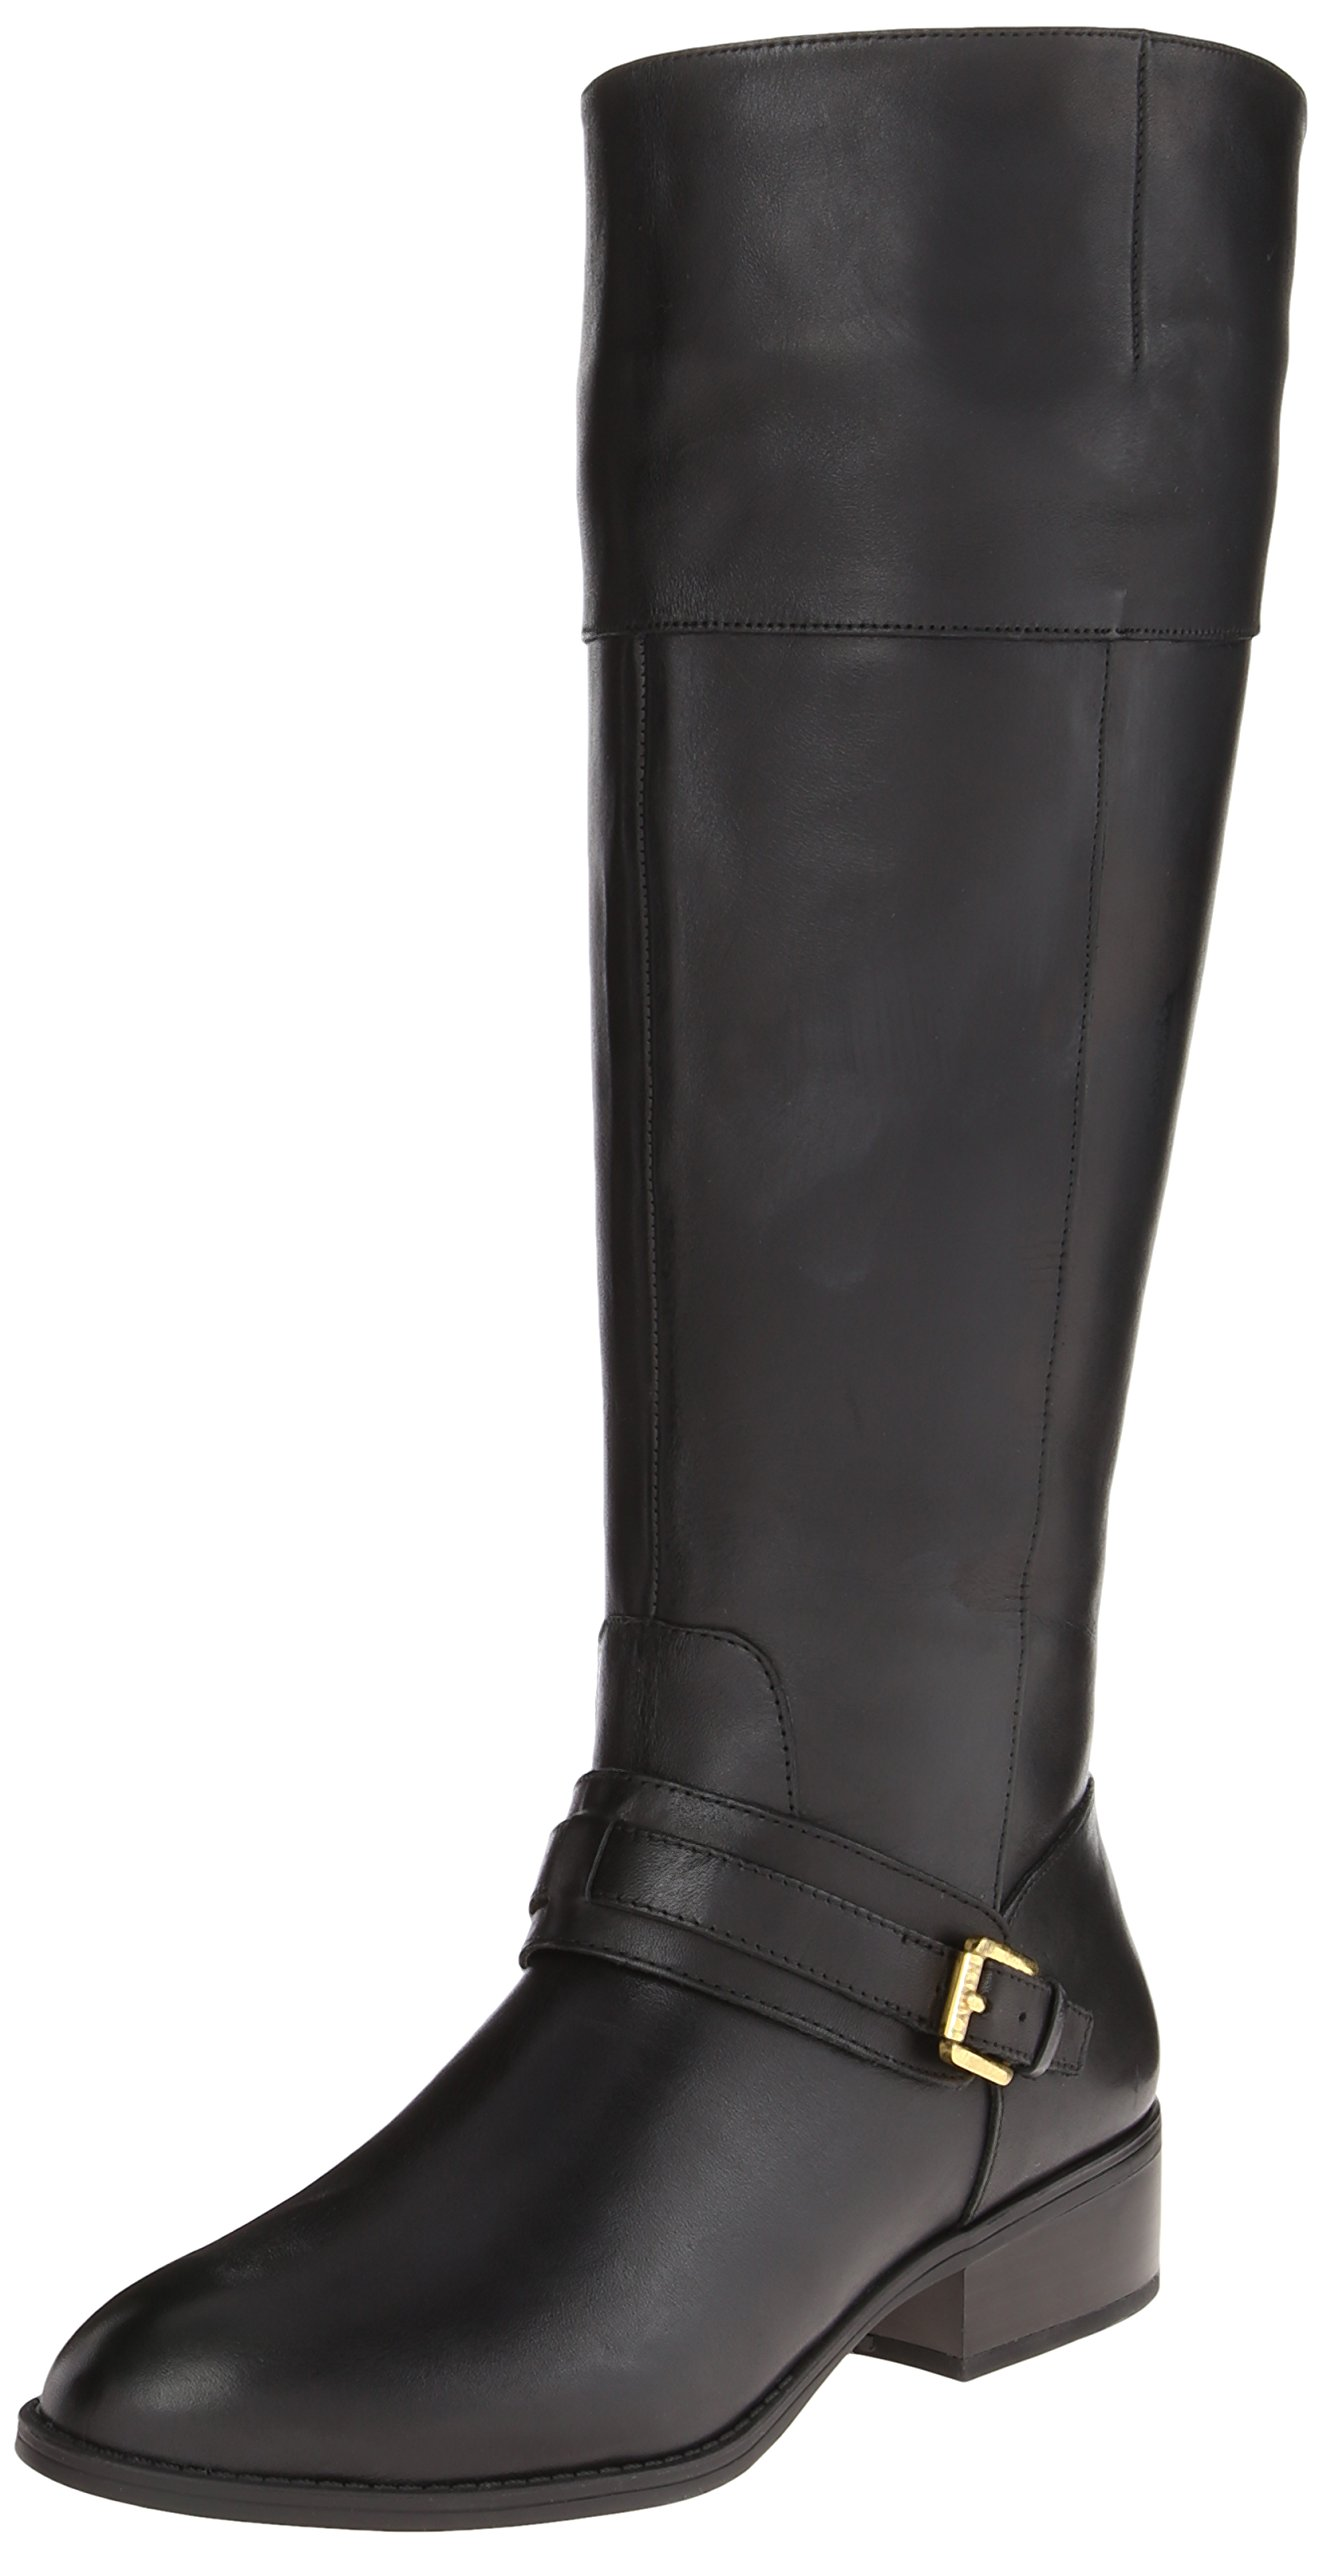 Elegant Soliloquy IdlaurenralphlaurentallyrainbootTalk About Stylish! These Ralph Lauren Rain Boots Are Musthave Kicks For Fierce Fashionistas Who Find Themselves Braving Lessthanpleasant Outdoor Conditions The Exterior Is Glossy